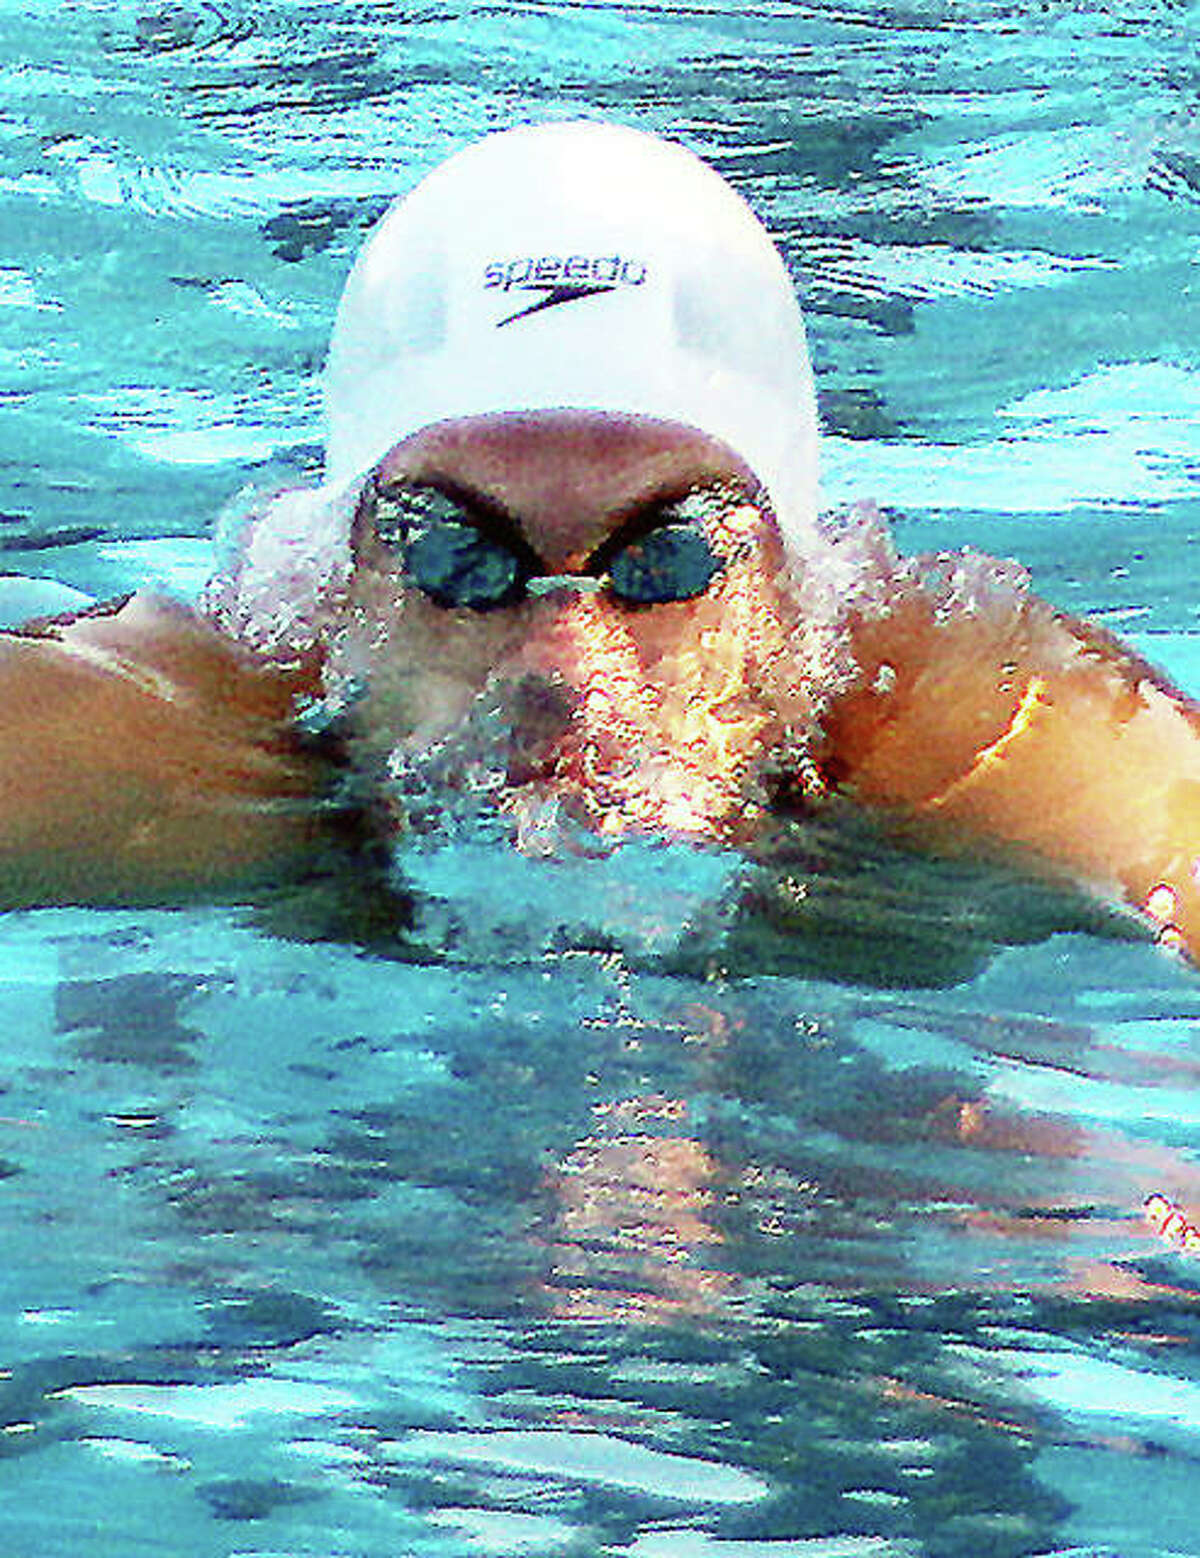 Noah Clancy of Alton, now at Missouri S&T, was a three-time IHSA State Meet qualifier. Boys swimming, as well as other winter sports, are delayed and may not take place this season after winter sports were put in 'pause' mode by the IHSA Tuesday following an announcement by Illinois Gov. Pritzker that Tier 3 coronavirus mitigations will go into place.